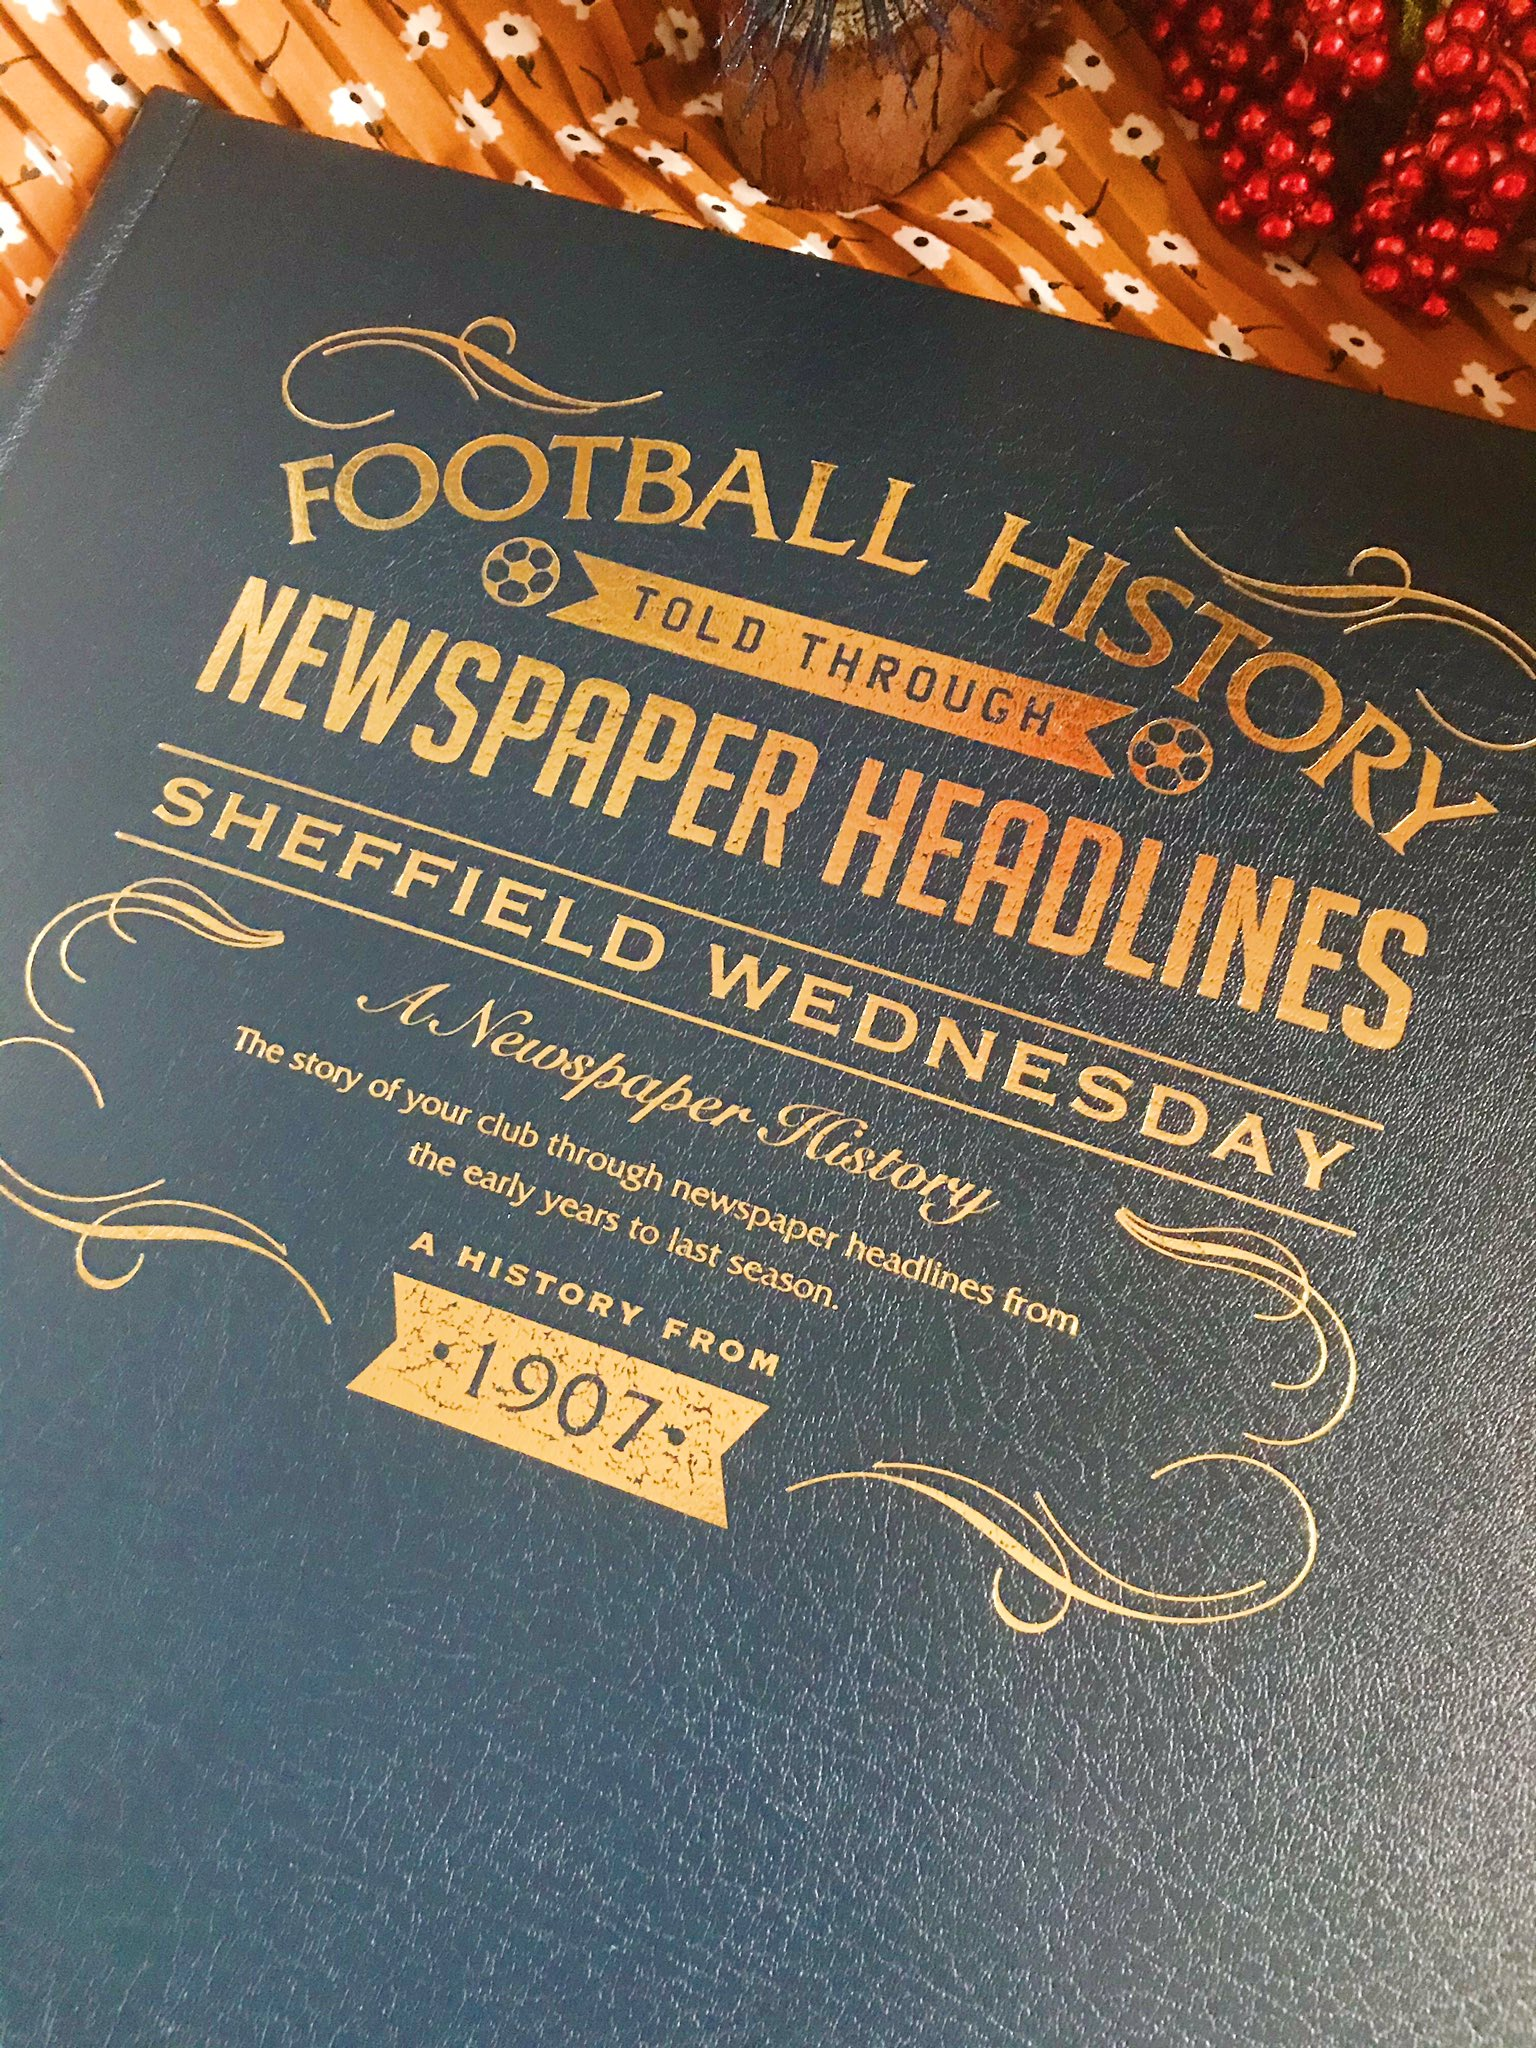 Historical Newspapers football history book front cover